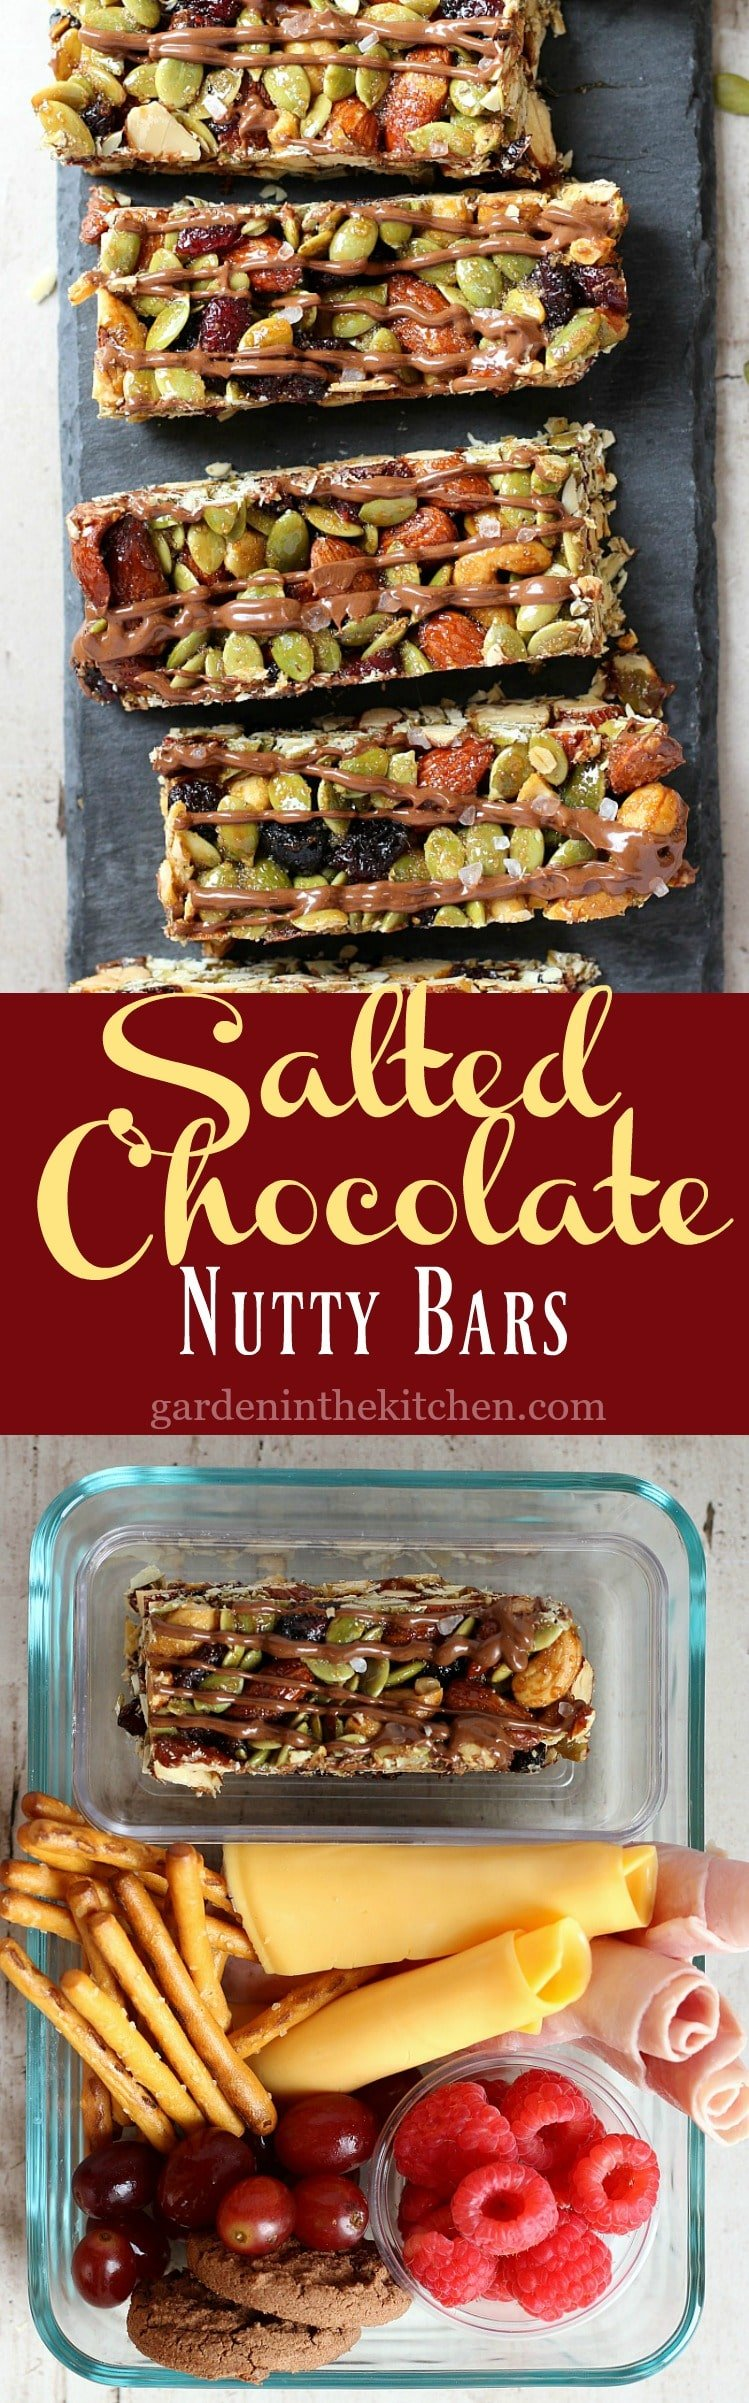 Salted Chocolate Nutty Bars | Garden in the Kitchen